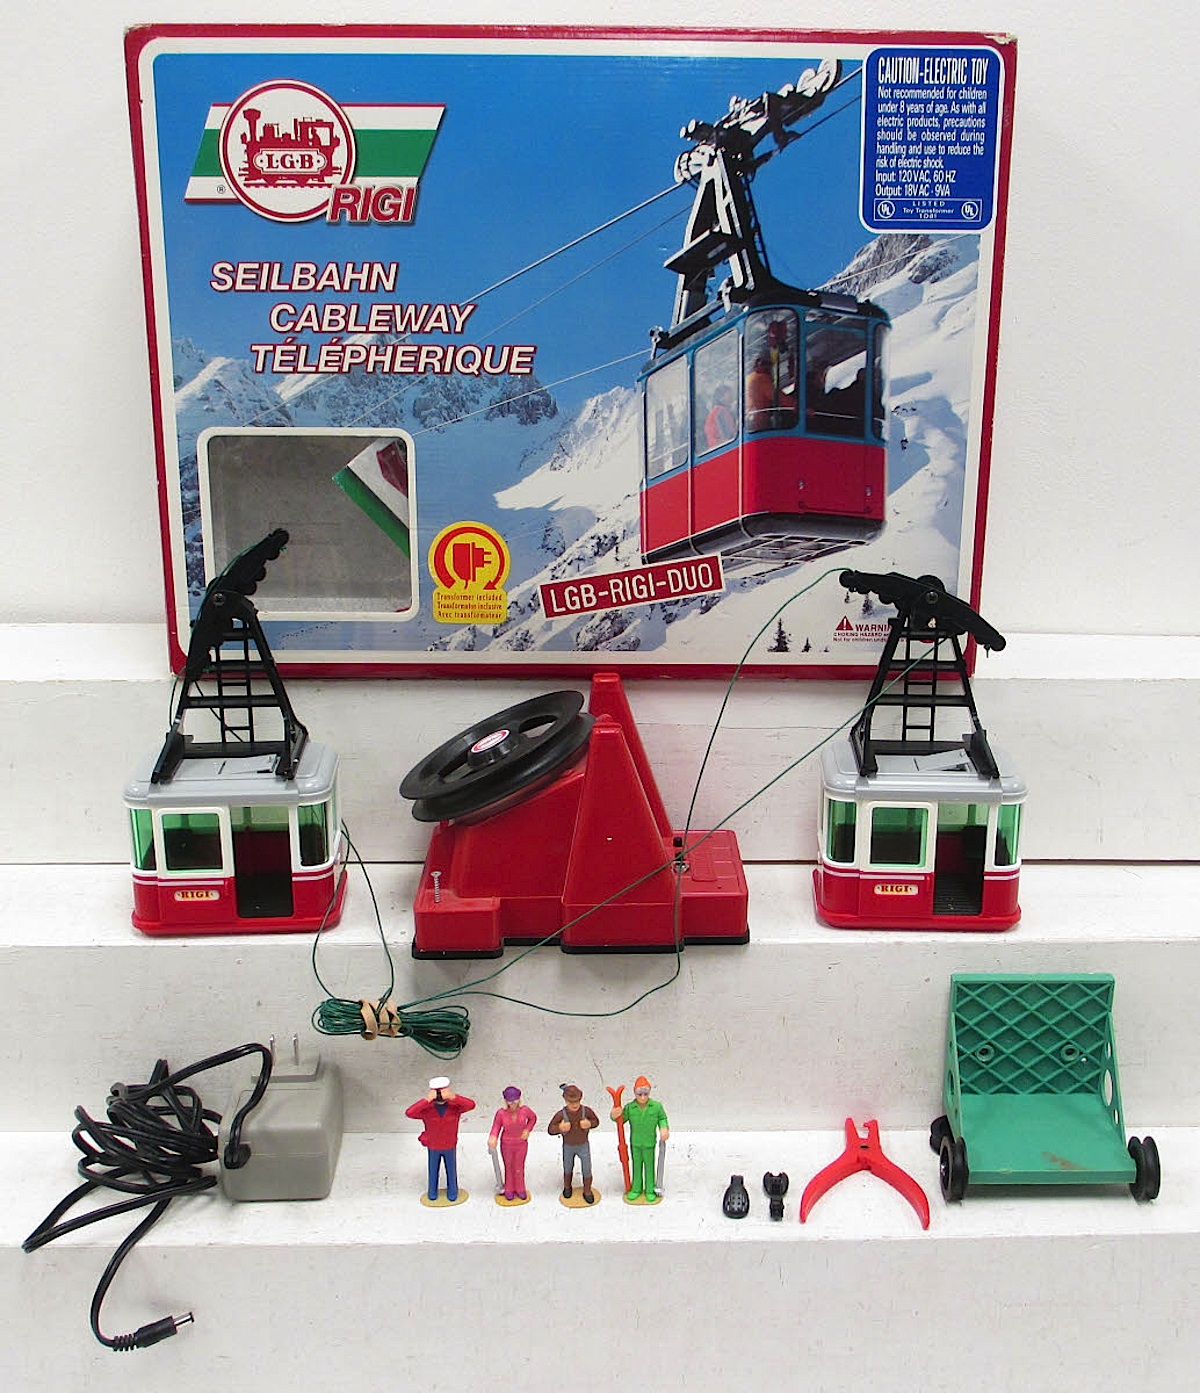 RIGI DUO®-Pendelbahn (Cable way), 120 Volt